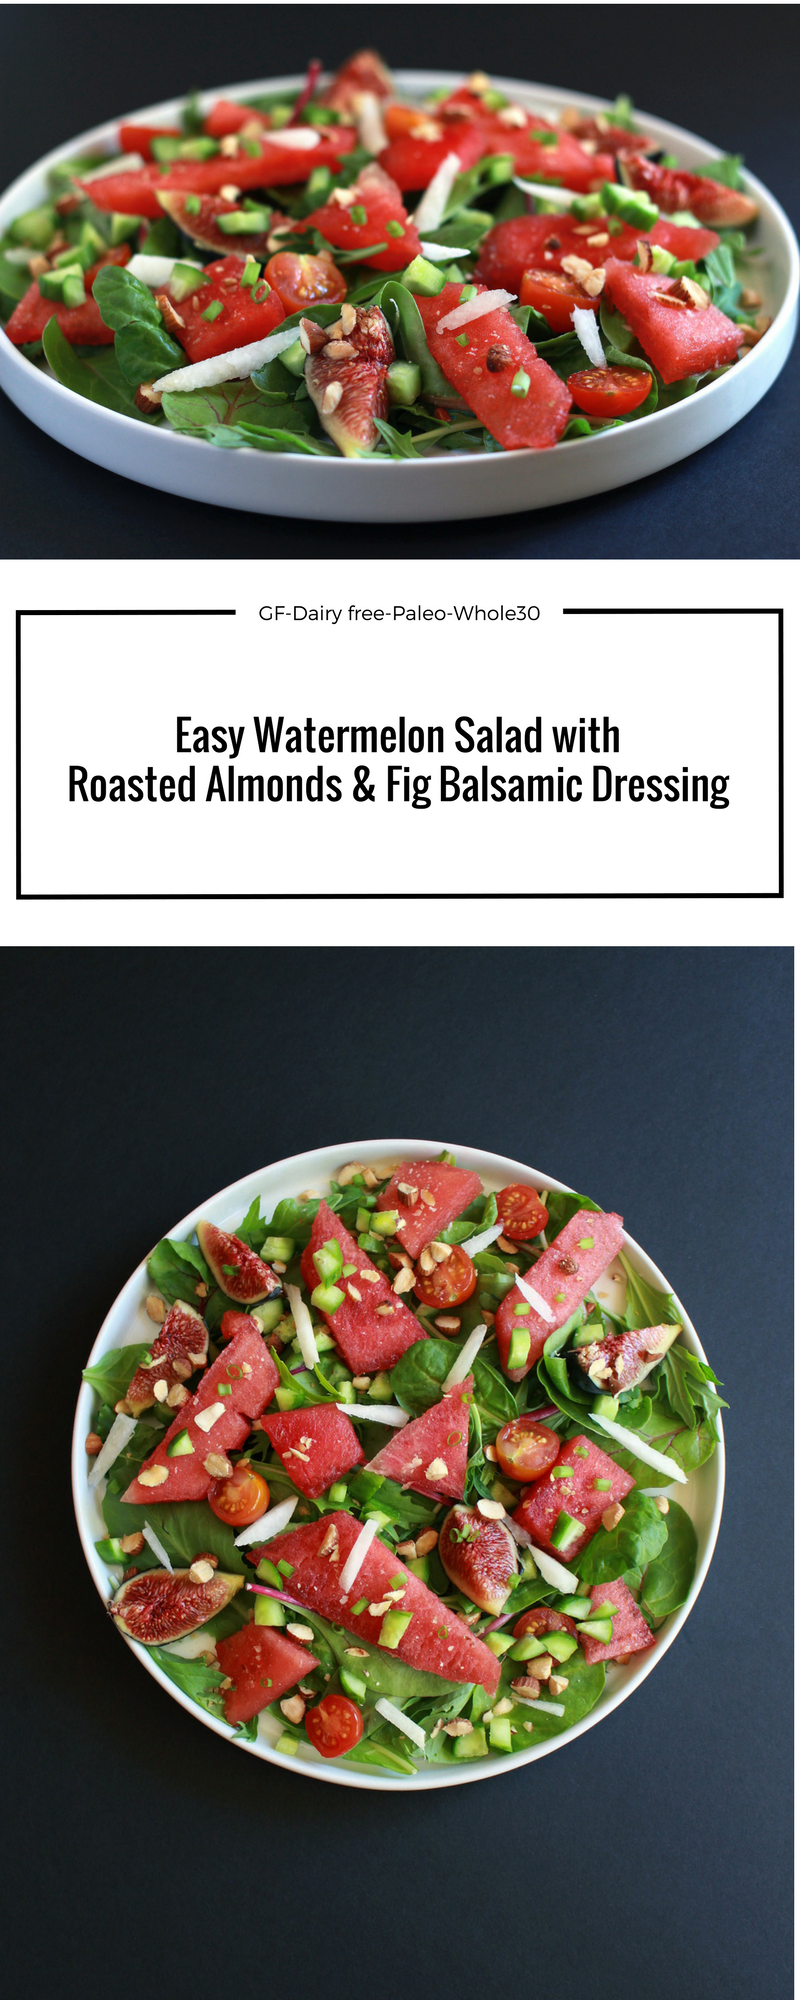 Easy Paleo Watermelon Salad with Roasted Almonds & Fig Balsamic Dressing-3